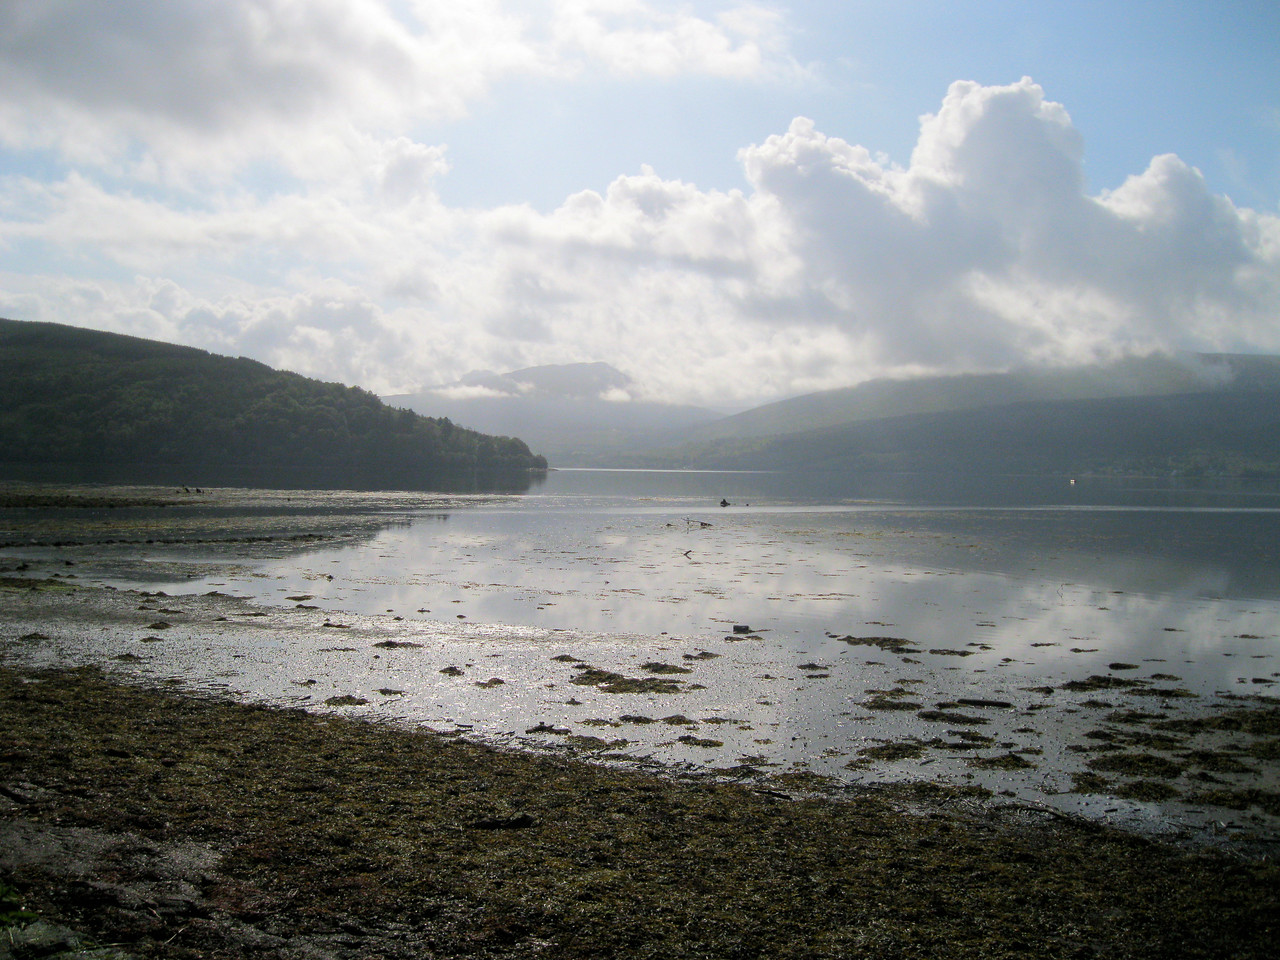 View up Loch Fyne from Inveraray